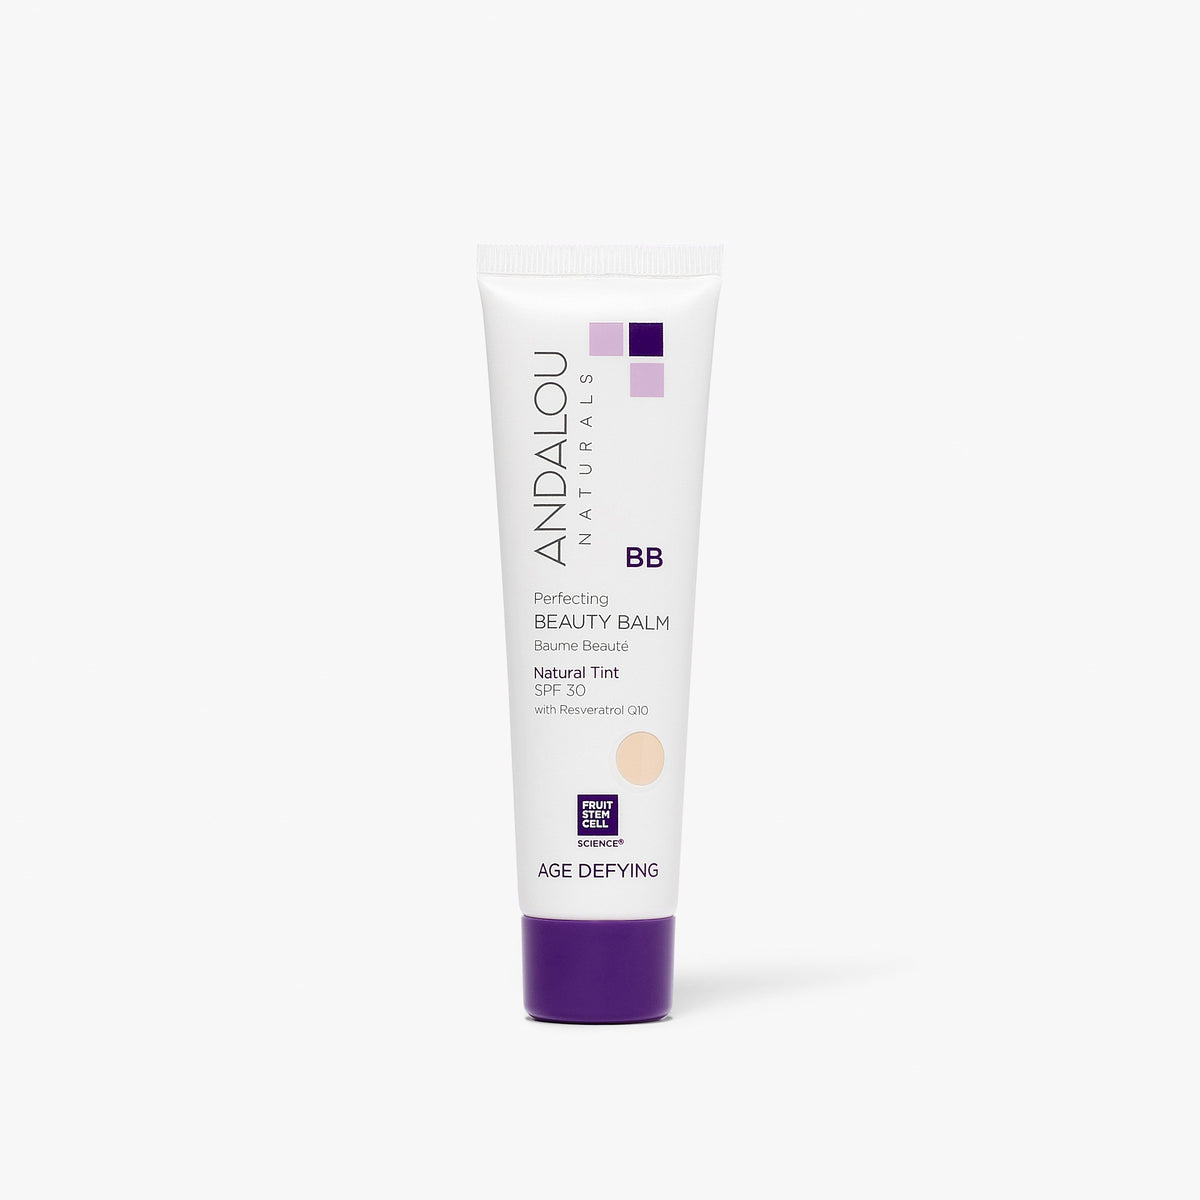 Age Defying Perfecting BB Beauty Balm Natural Tint SPF 30 - Andalou Naturals US